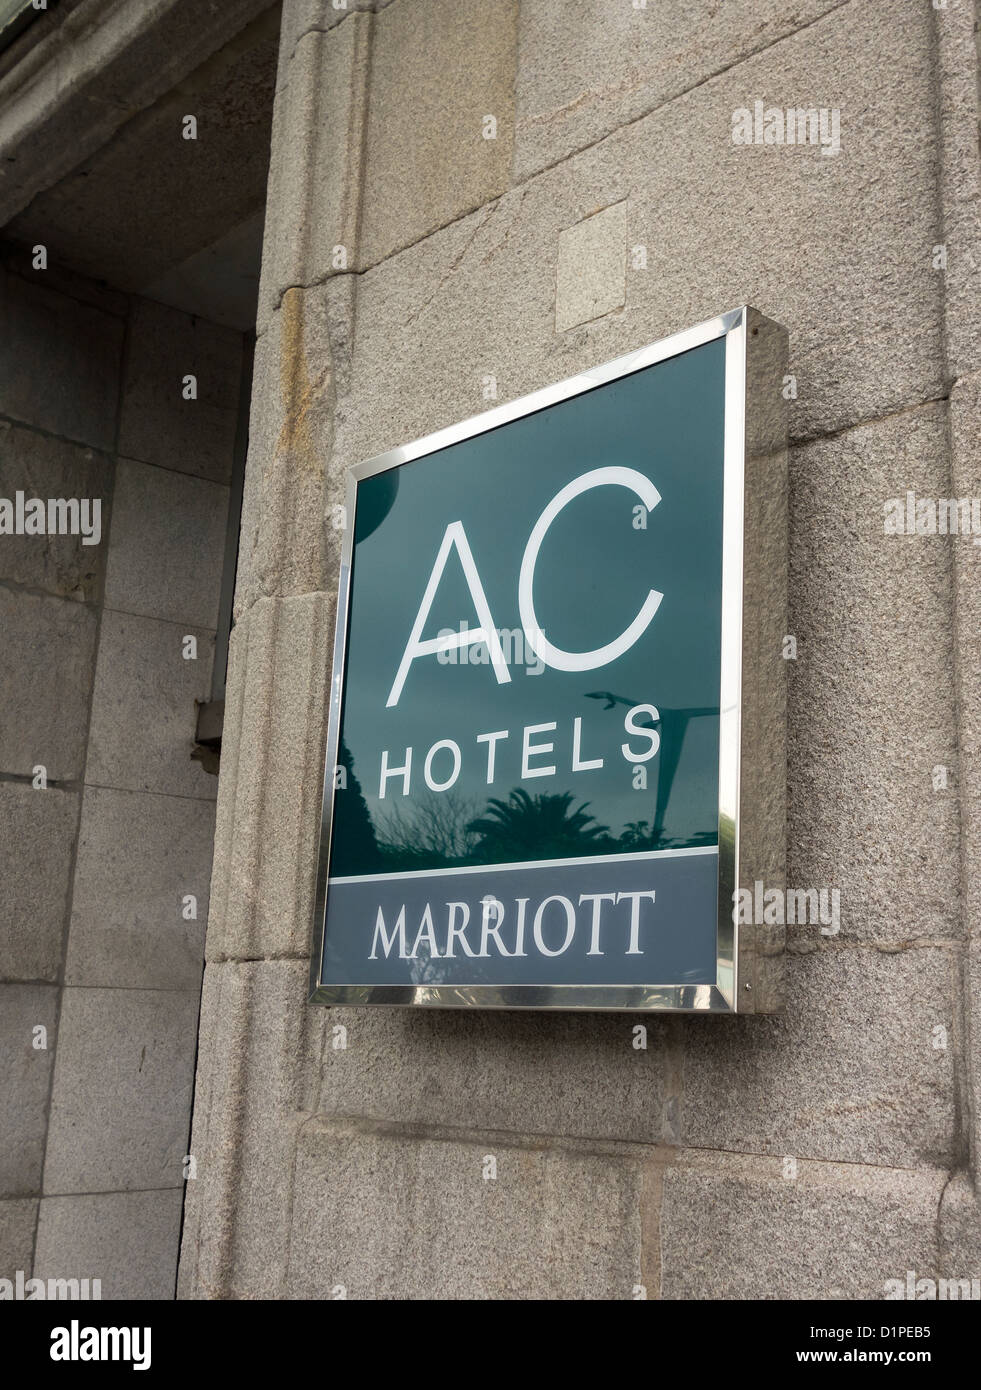 Marriott stock symbol images symbols and meanings ac hotels marriott europe sign stock photo royalty free image ac hotels marriott europe sign biocorpaavc biocorpaavc Image collections